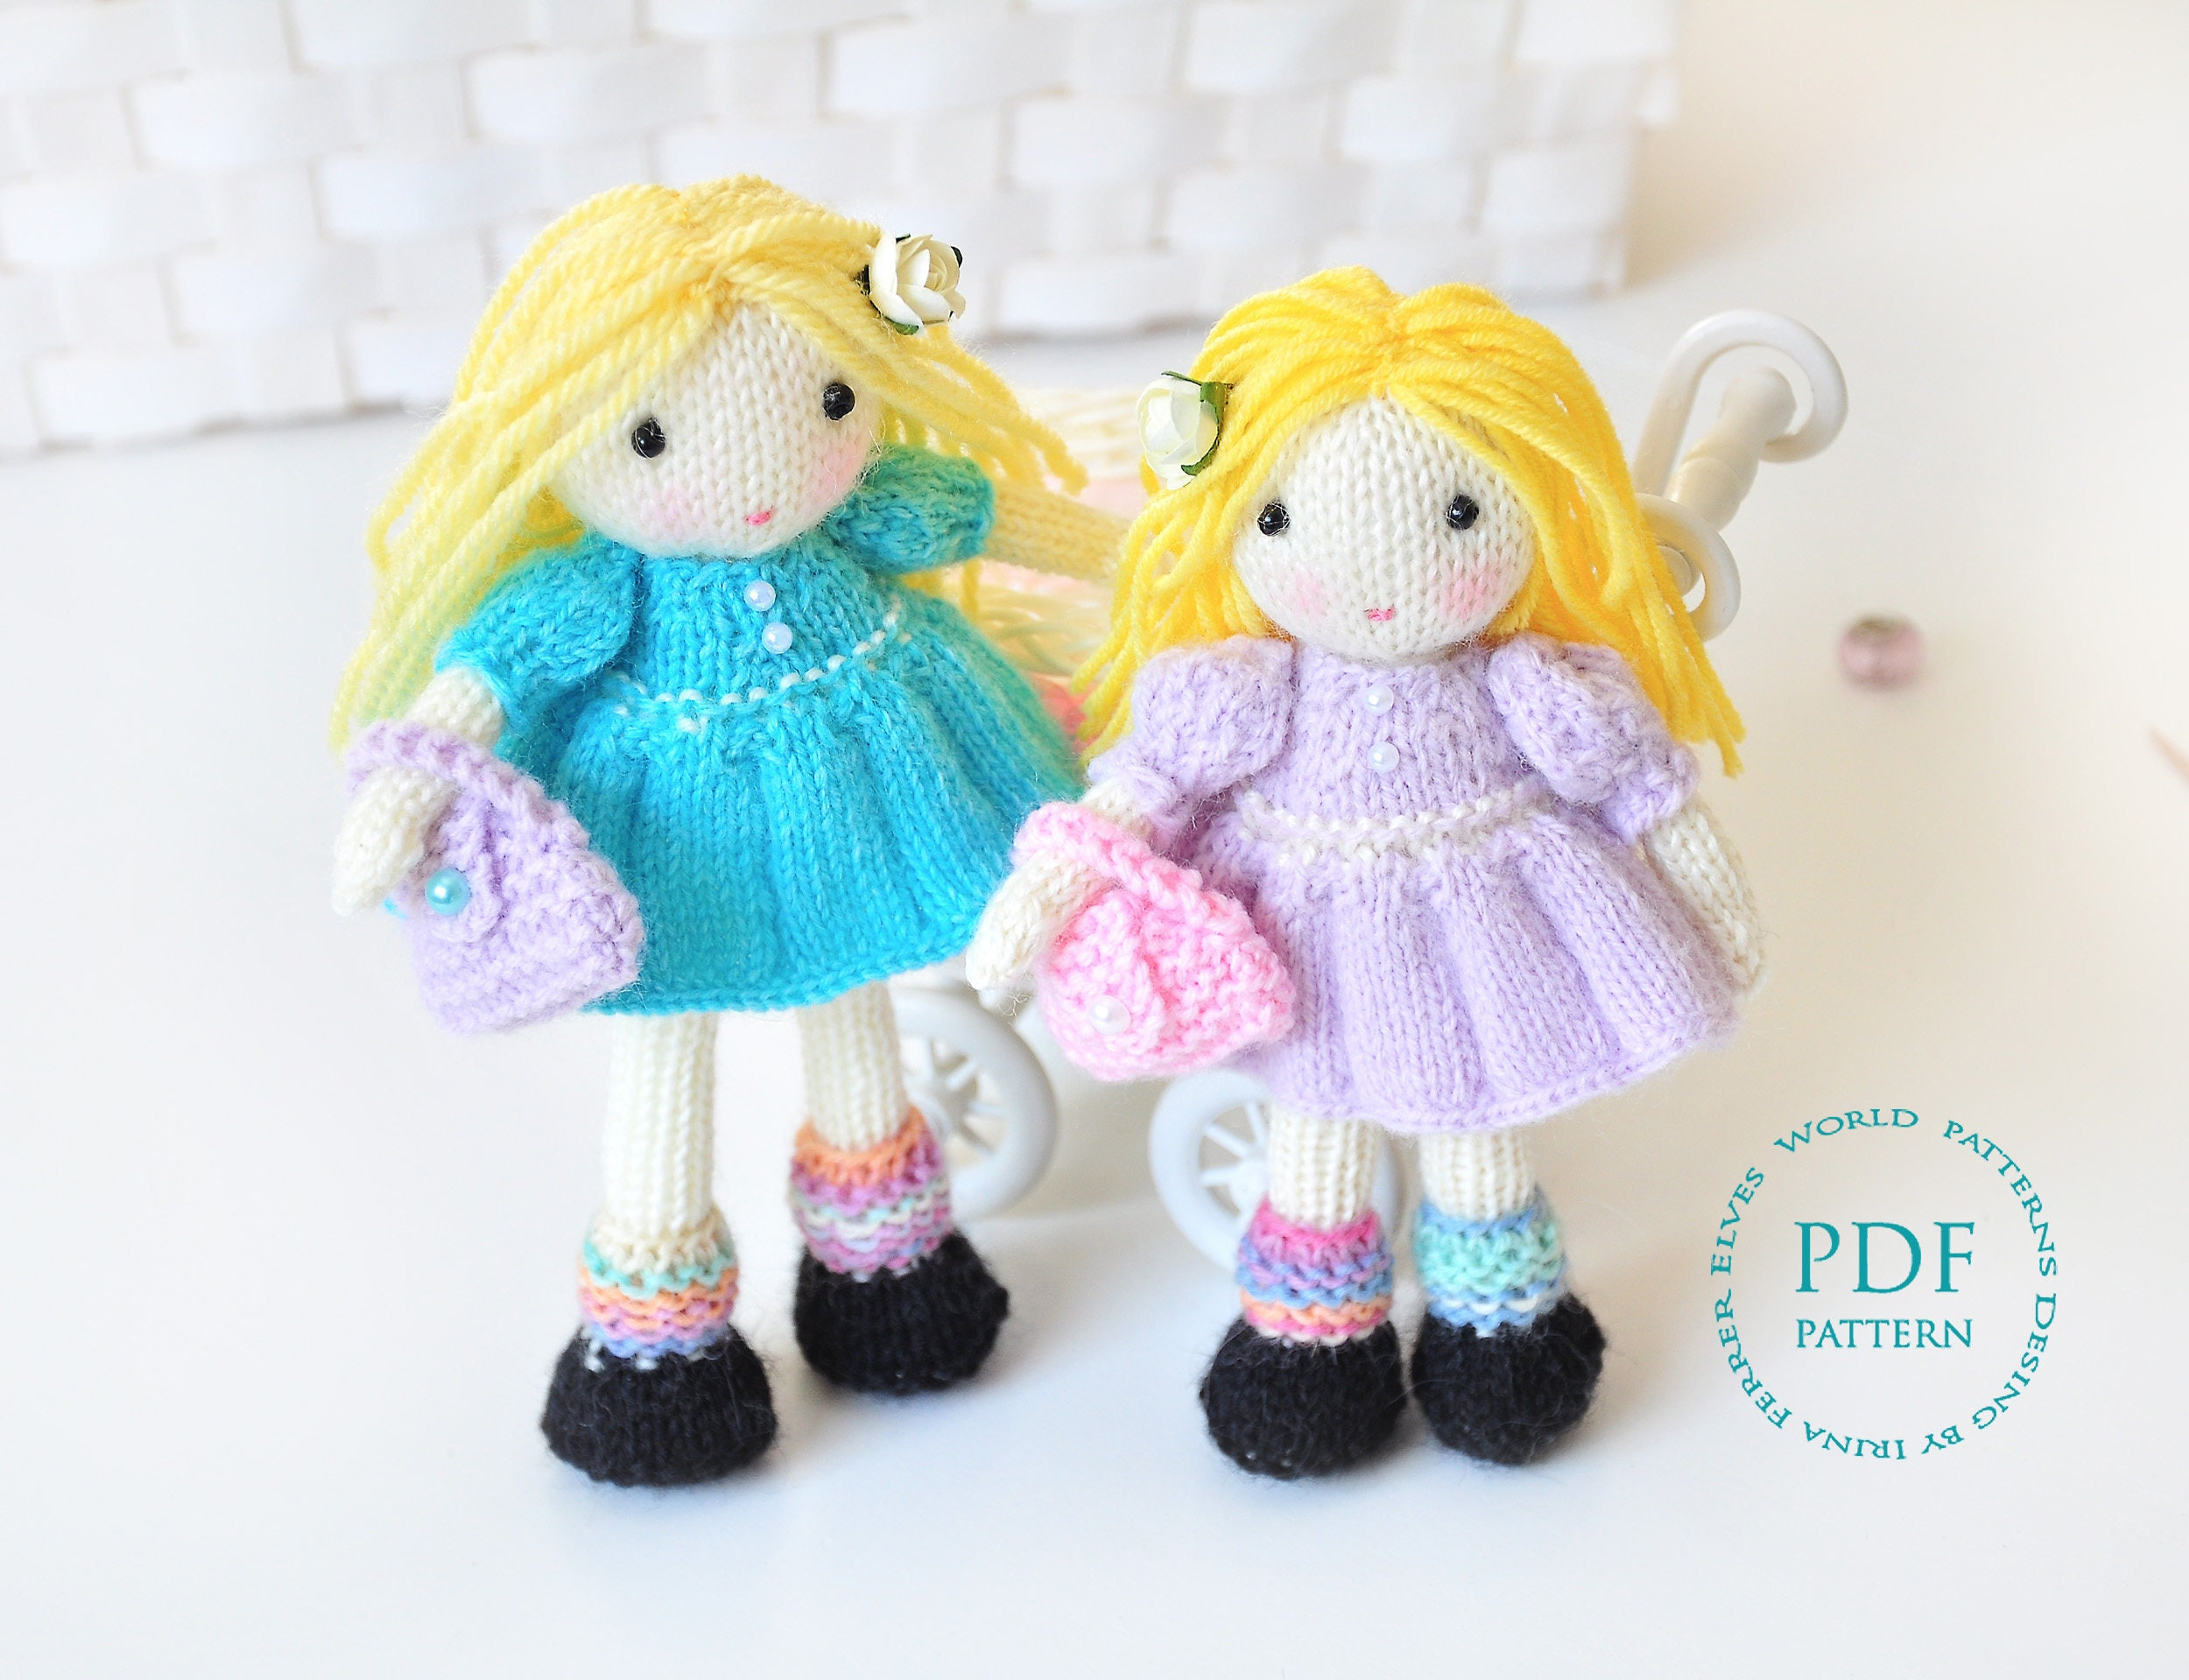 Doll knitting pattern molly and dolly dolls knitted doll pattern this is a digital file bankloansurffo Image collections